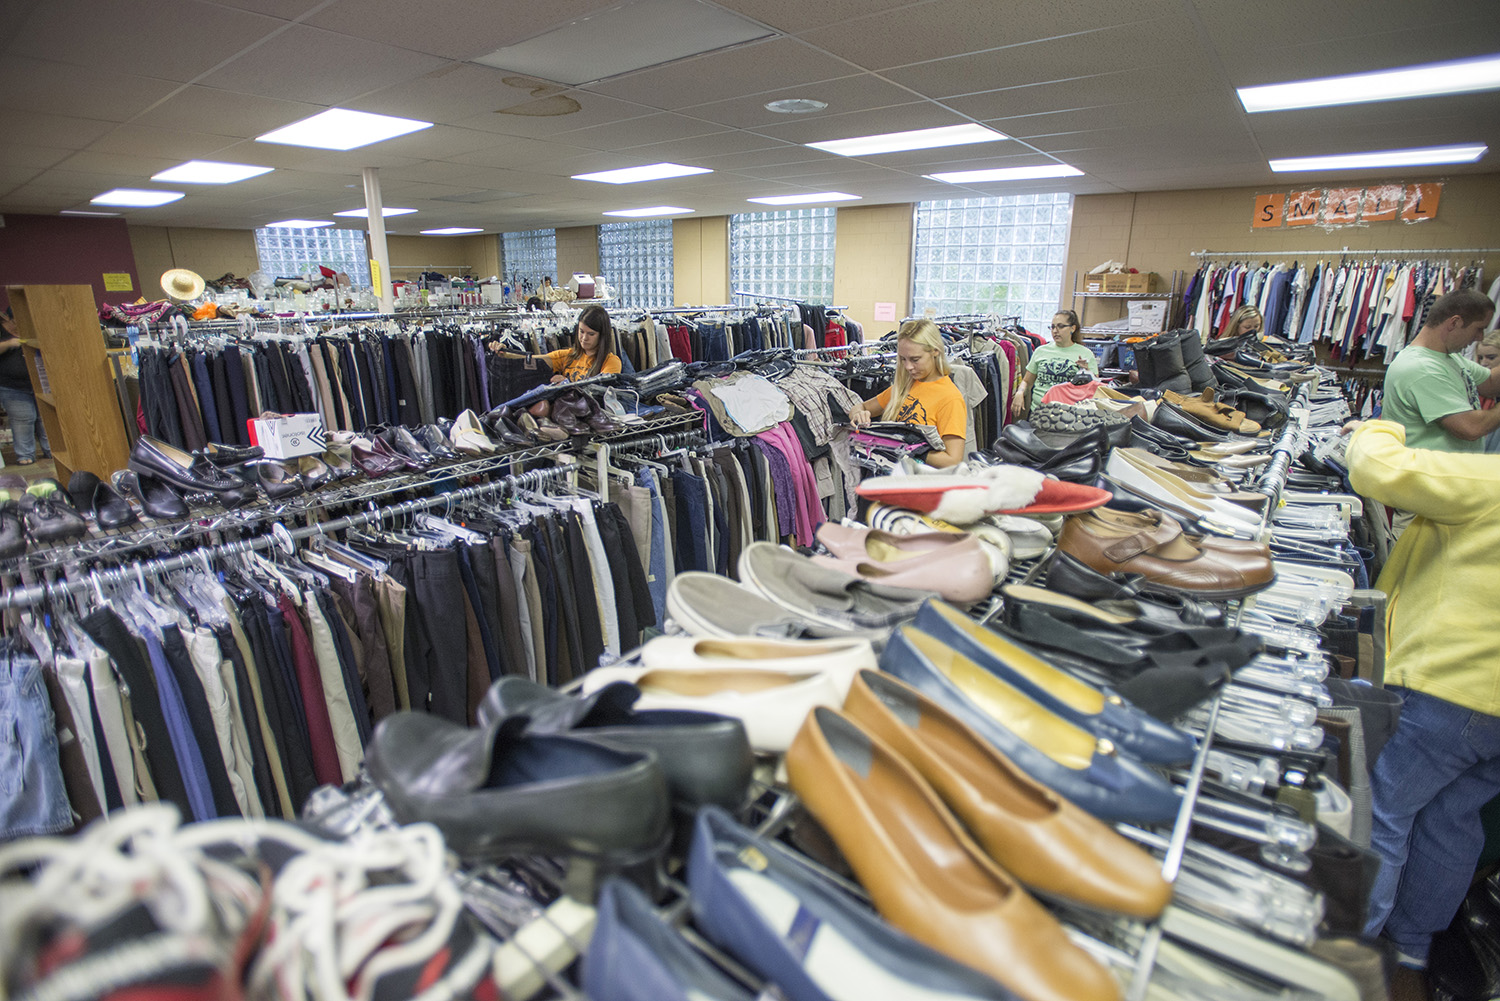 Bruins Give Back participants organize clothes on racks at the Charitable Union.